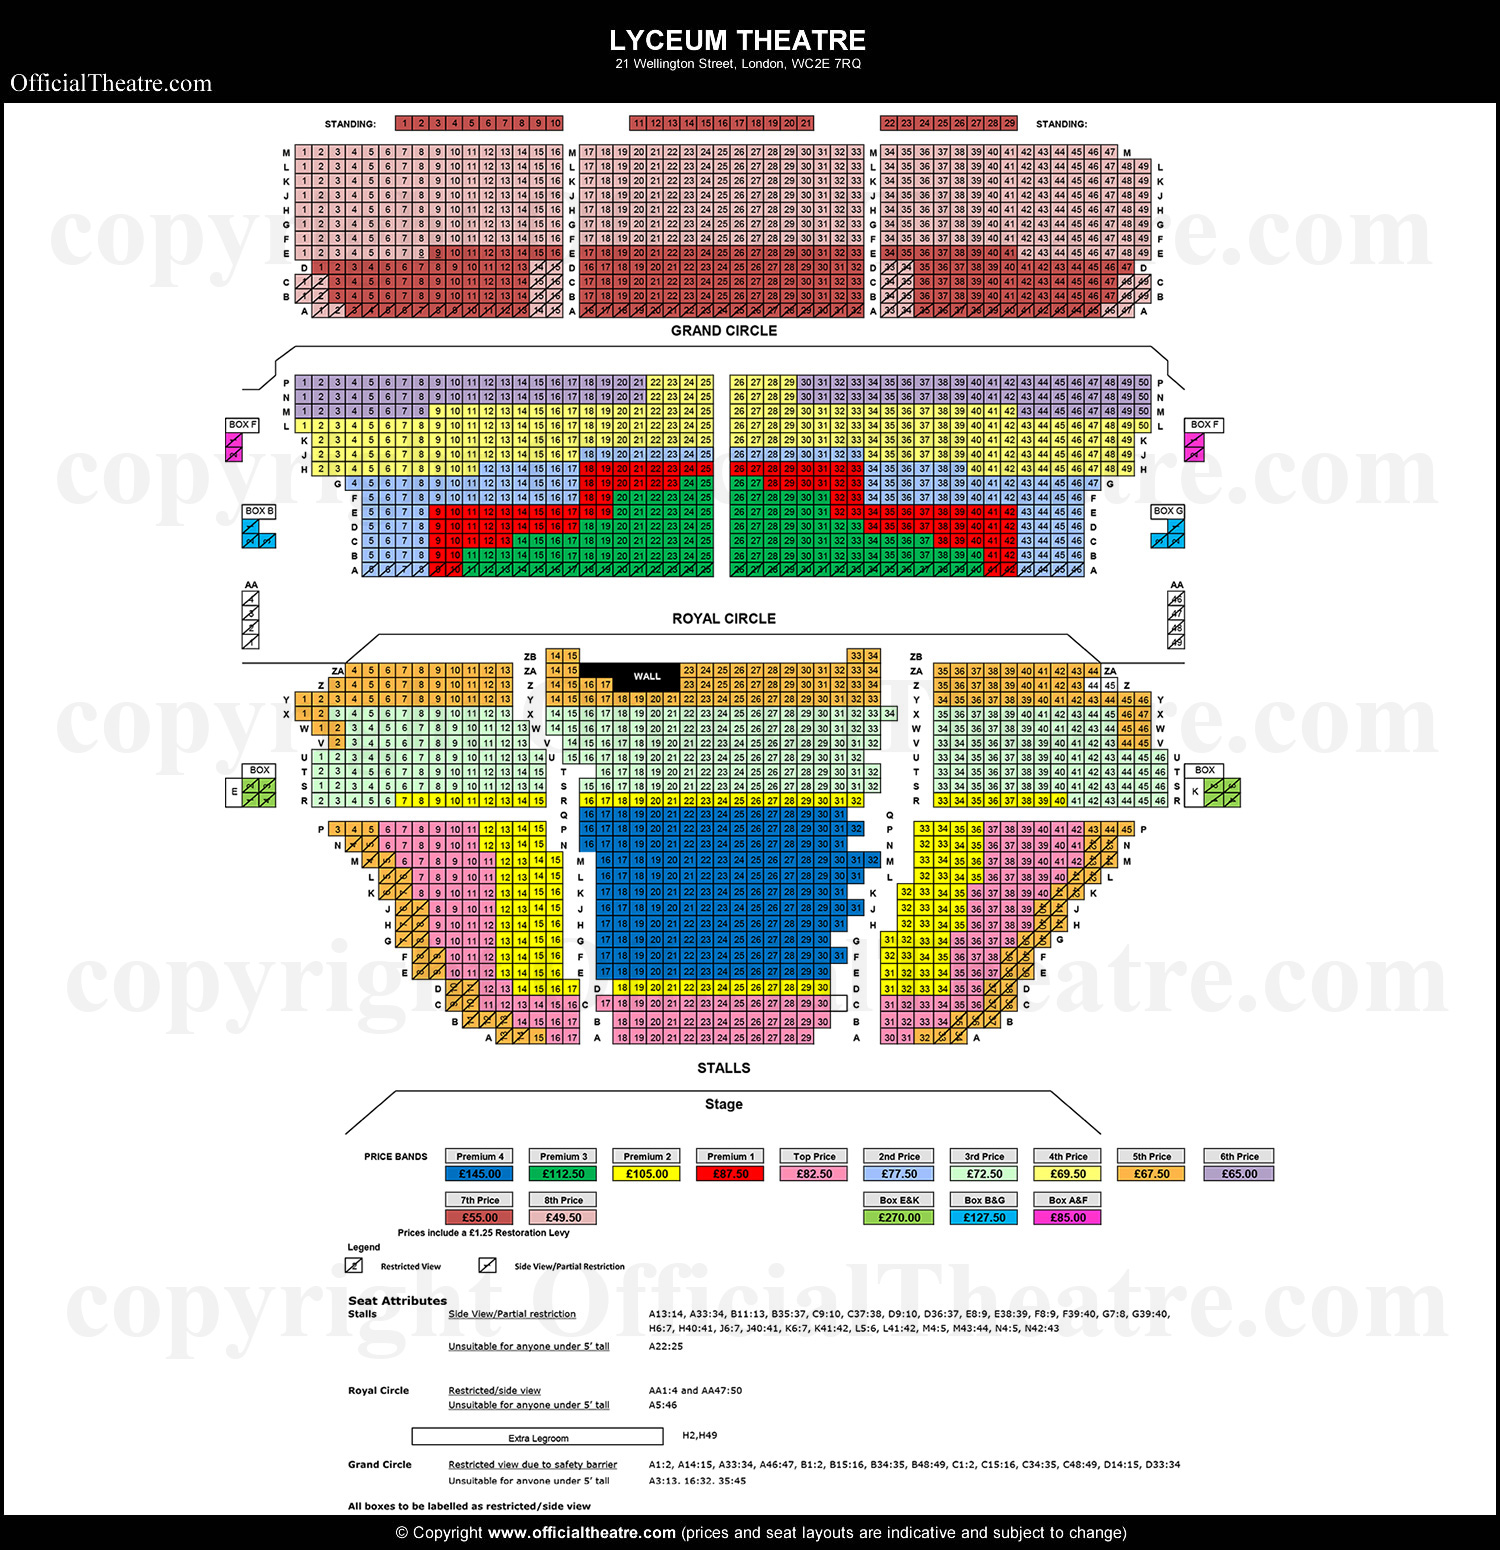 Lyceum-Theatre-seat-prices-2020